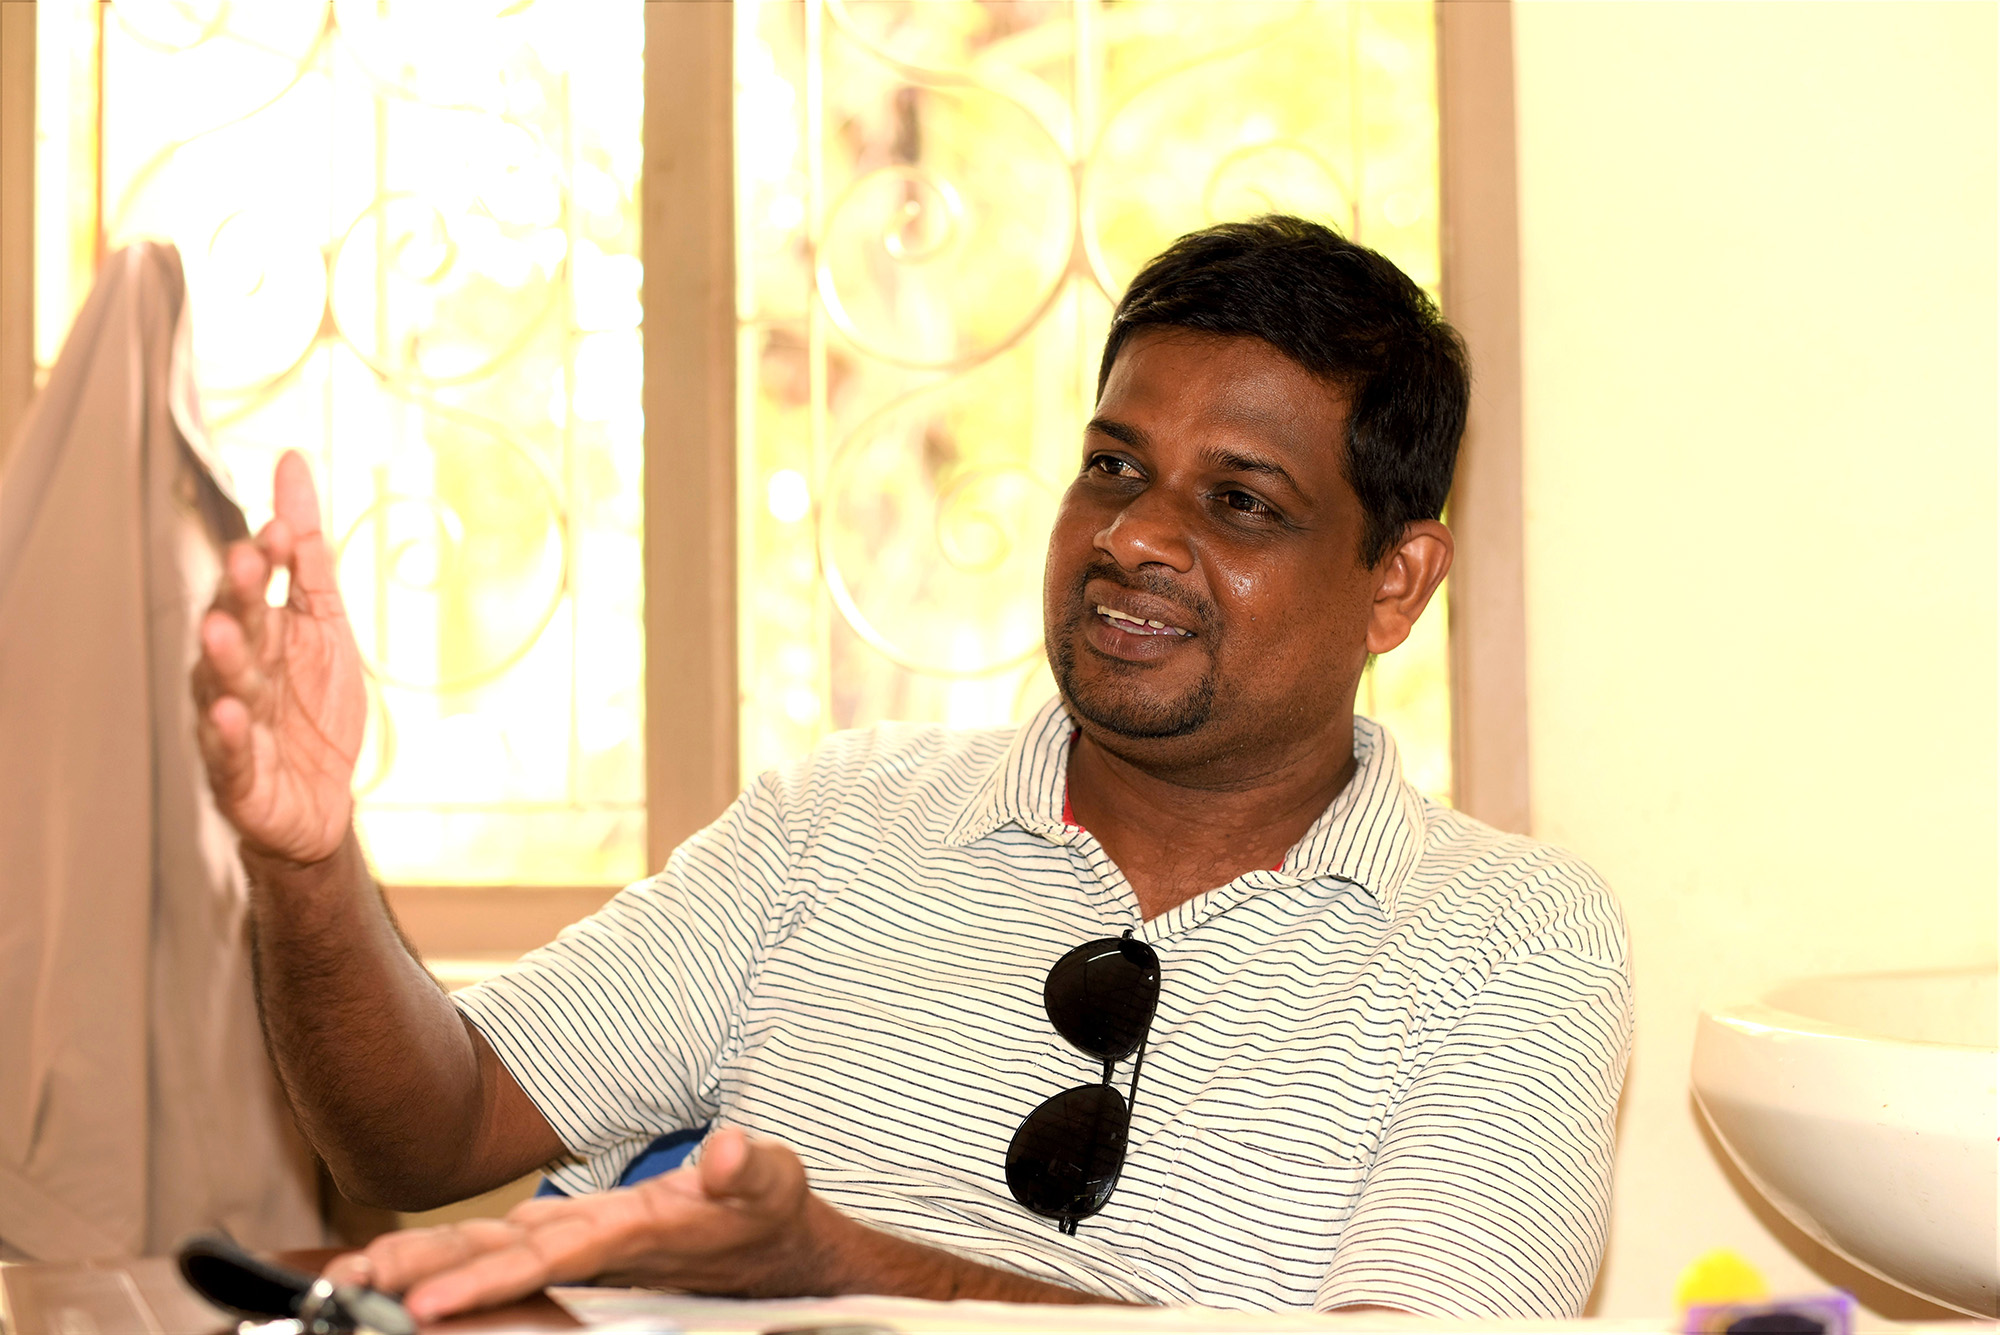 According to Kandaiah Karuanakaran, Agricultural Instructor for Mandawatthadi, The AIB is severely understaffed and lacks resources to serve the farmers in the area. Photo: Nipuna Kumbalathara, Oxfam